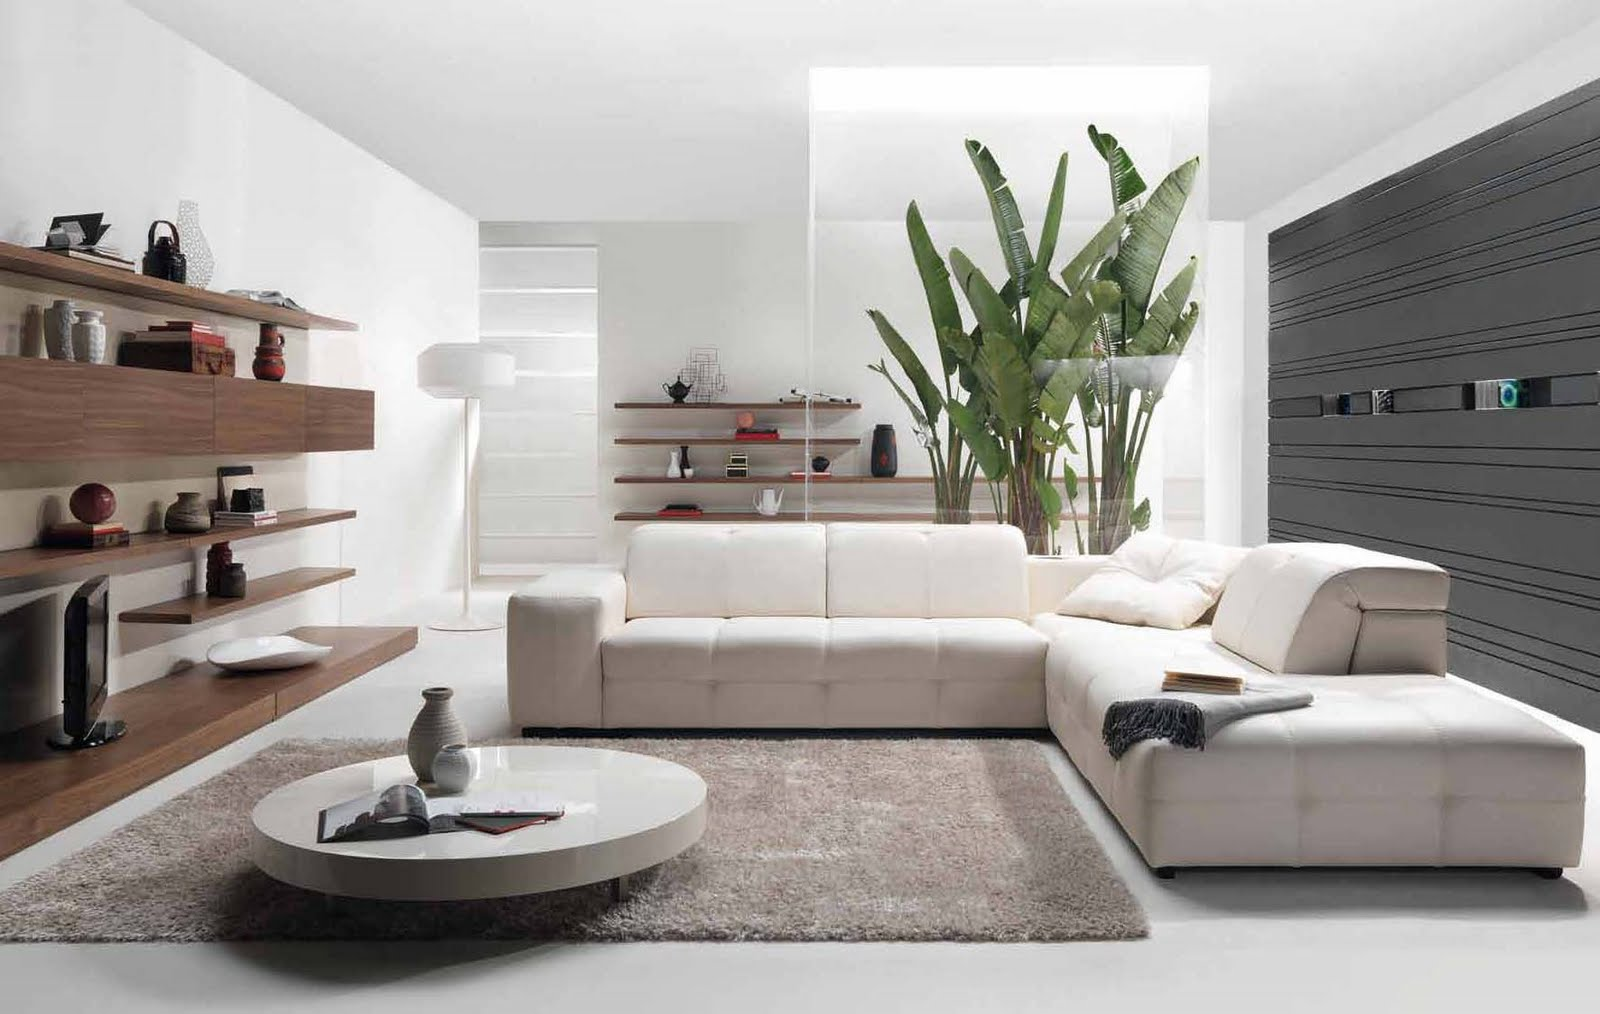 Future house design modern living room interior design for Modern home living room design